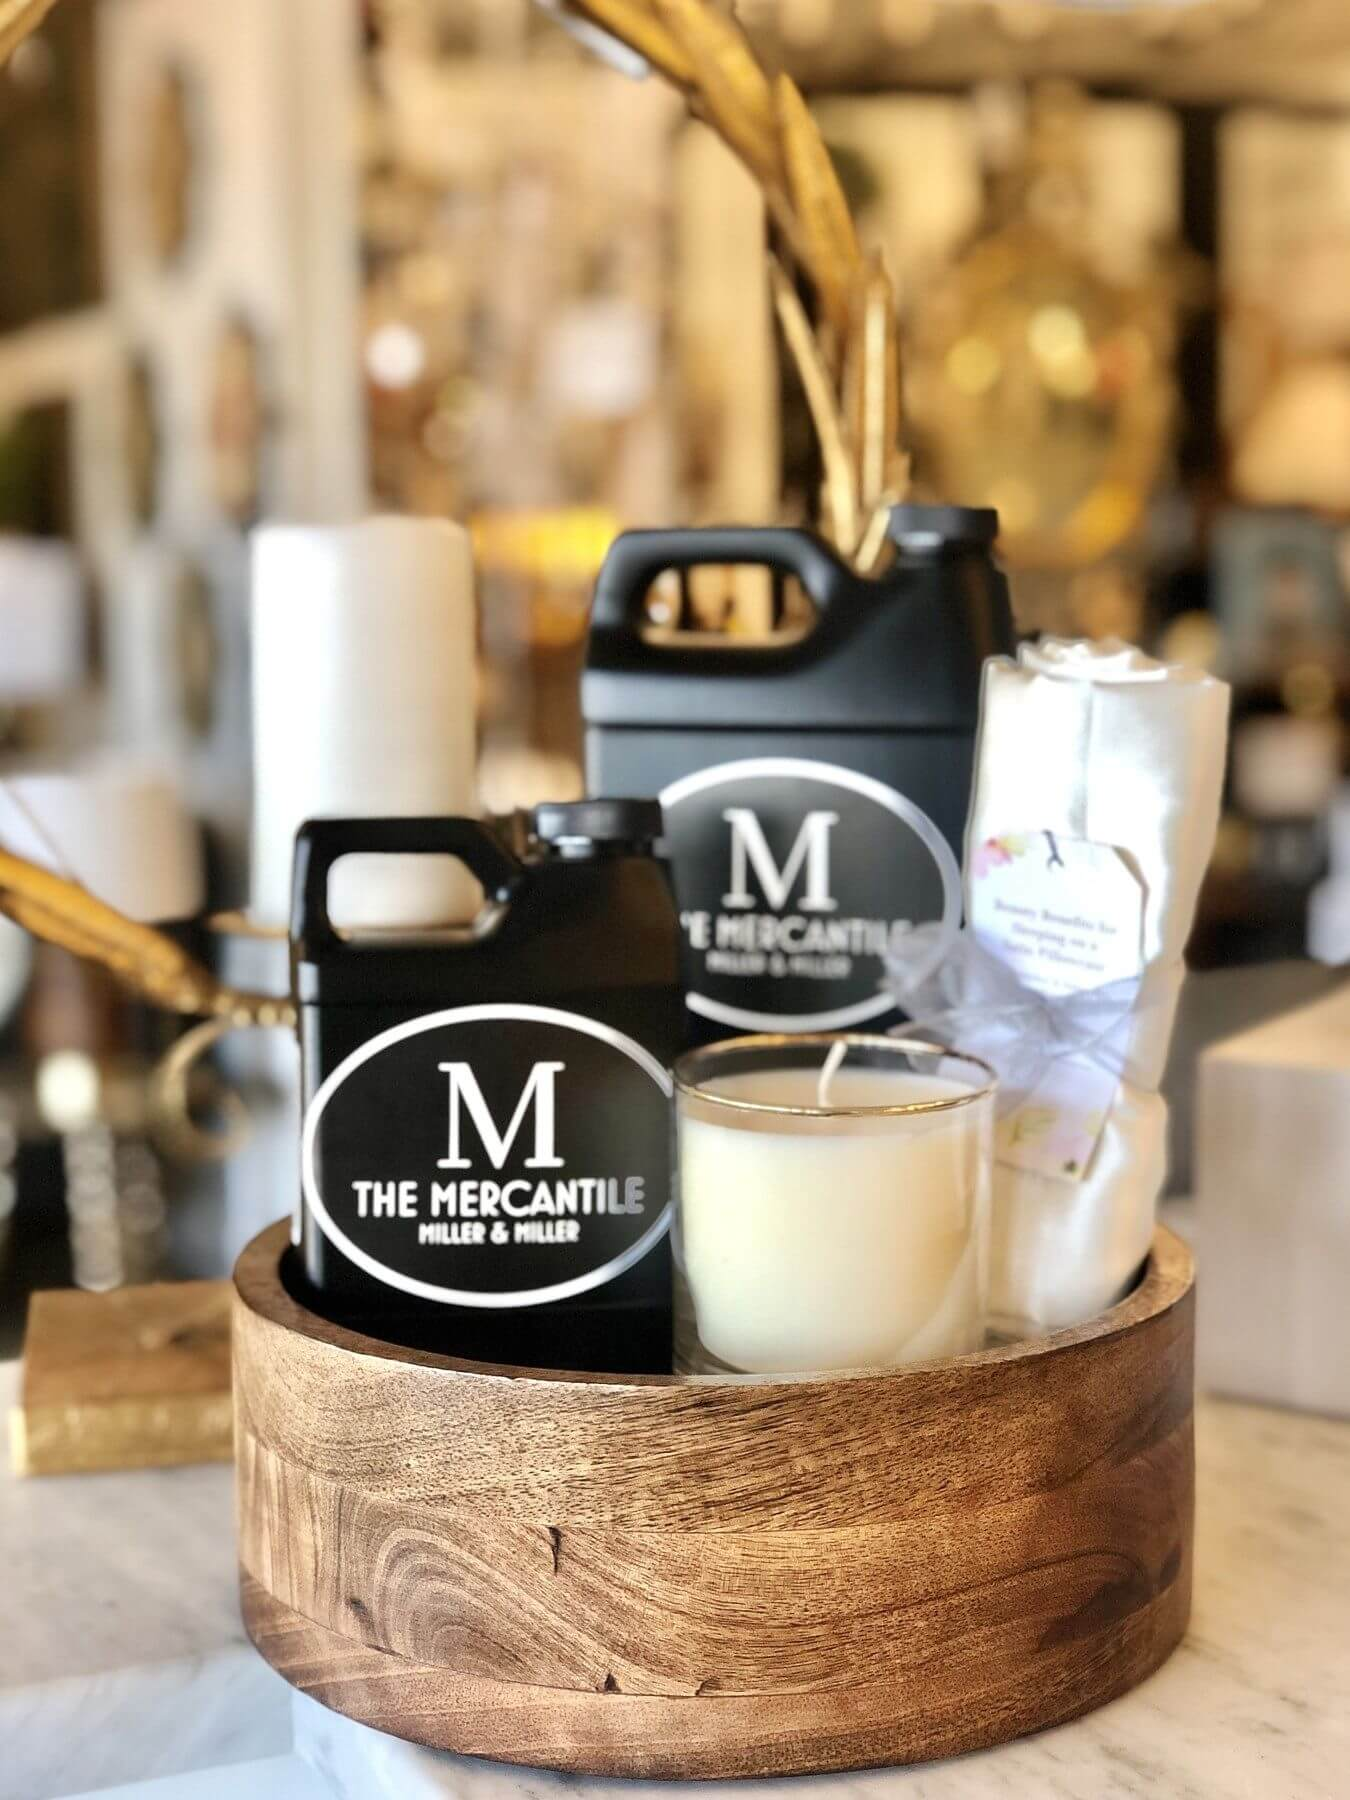 Signature fragrance bundle from The Mercantile by Miller